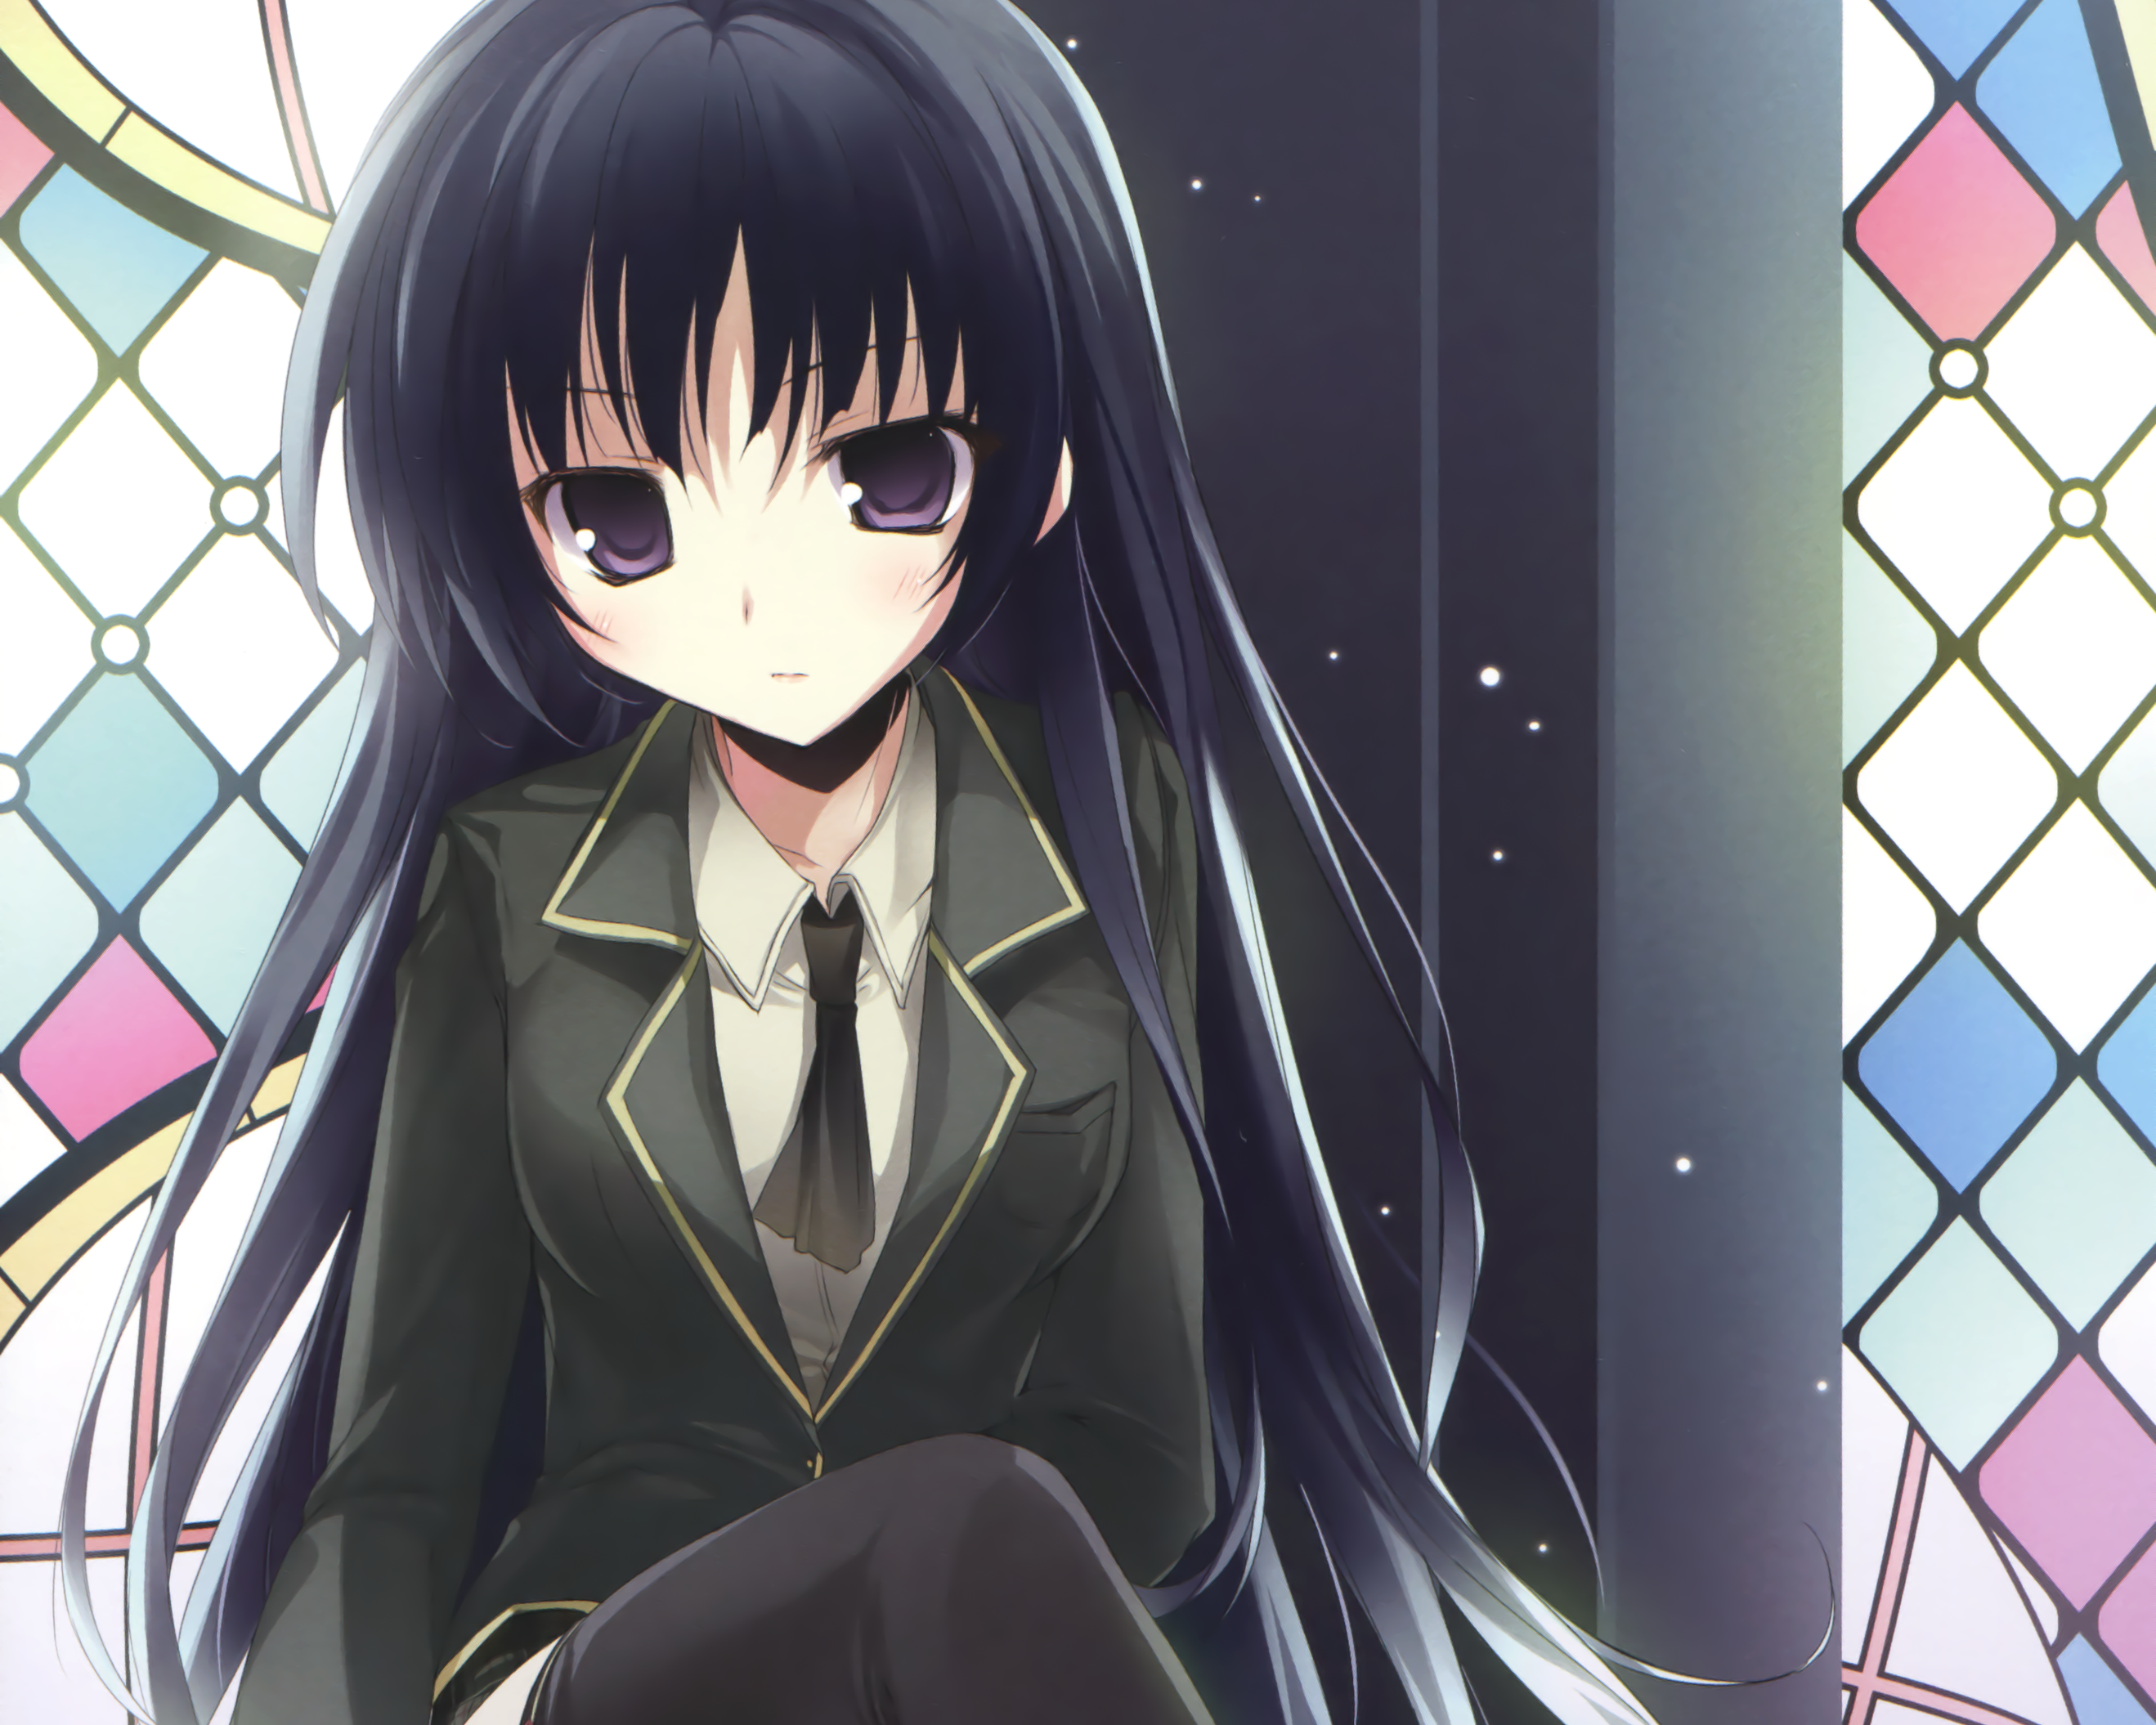 the gallery for gt anime neko girl with black hair and